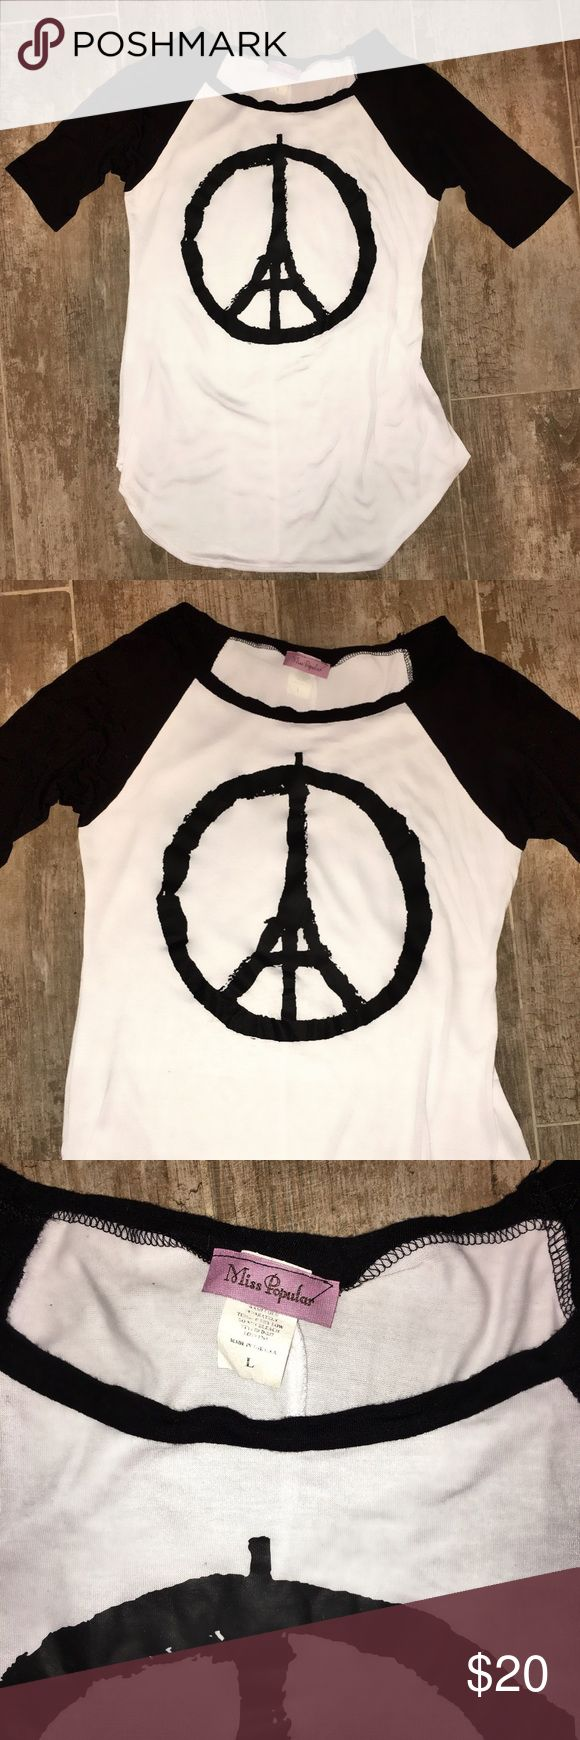 """Miss Popular """"Paris Peace"""" 3/4 Sleeve T-Shirt Sz L Miss Popular """"Paris Peace"""" 3/4 Sleeve T-Shirt Sz L - Black/White - Worn Once - *French graphic designer Jean Jullien created the image, """"Peace for Paris"""", and posted it on Twitter and Instagram at midnight after the attacks. It has been embraced by the world as the symbol to show solidarity with the City of Light and has been printed on t-shirts, posters and flags, and been shared across social media along with the hashtags #PrayforParis and…"""